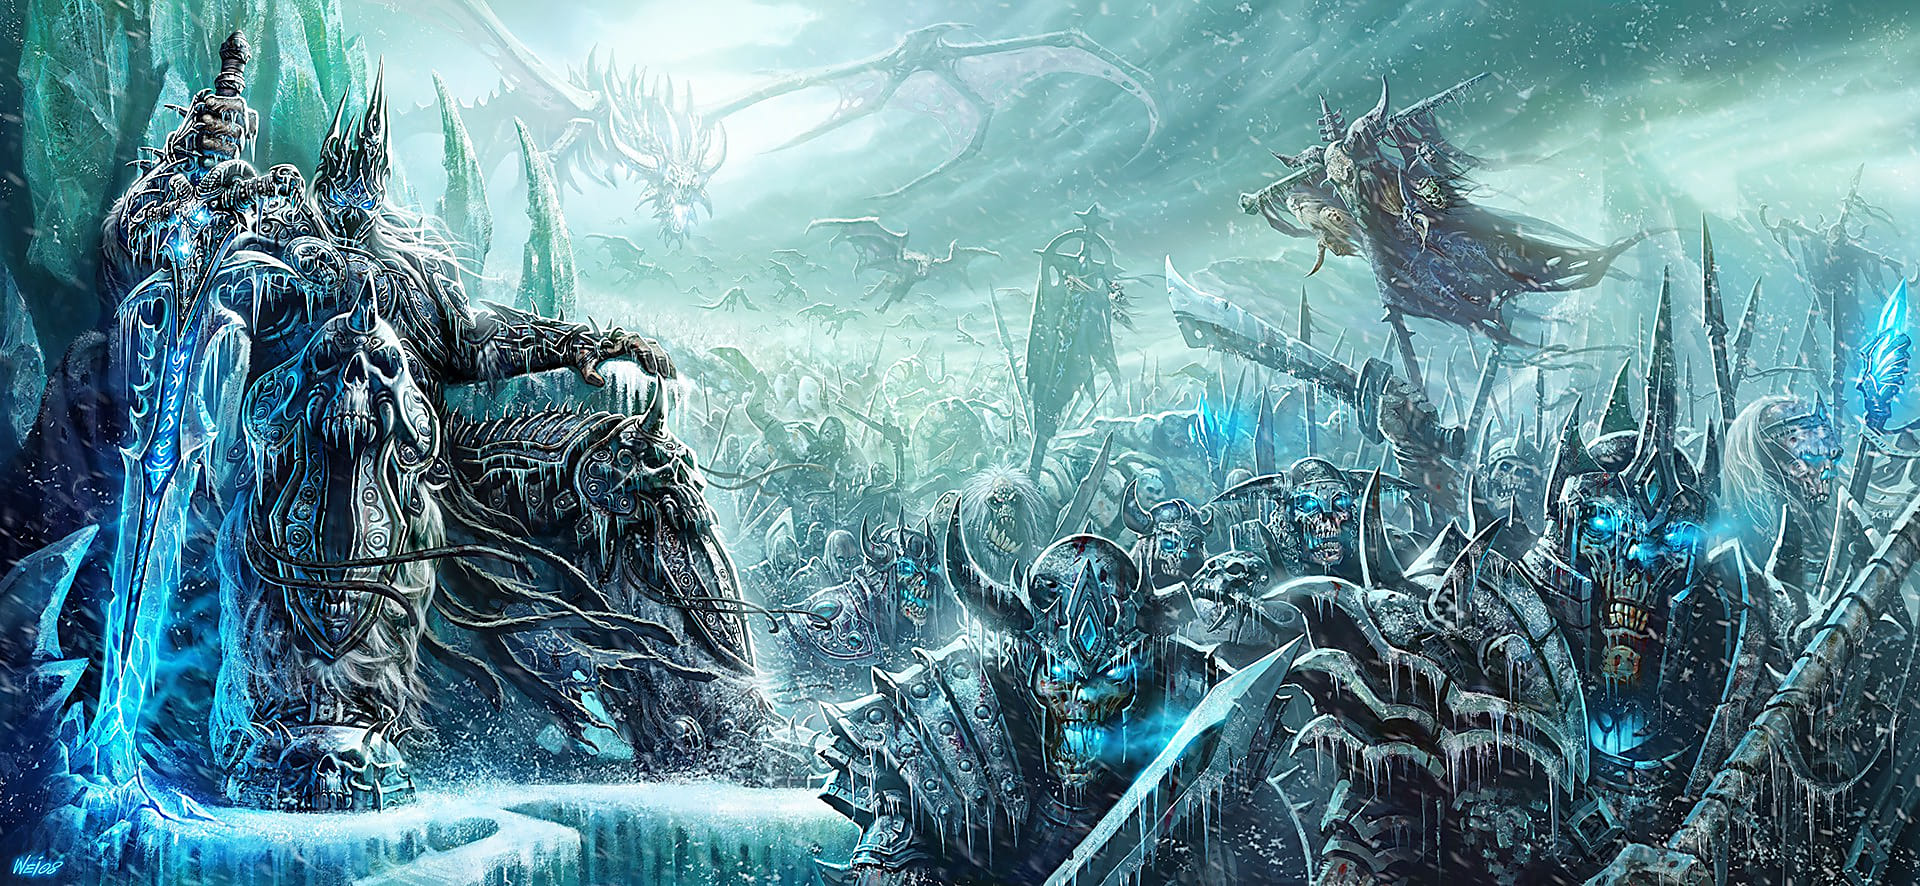 warcraft-lich-king-kunstdruck-nat-games.